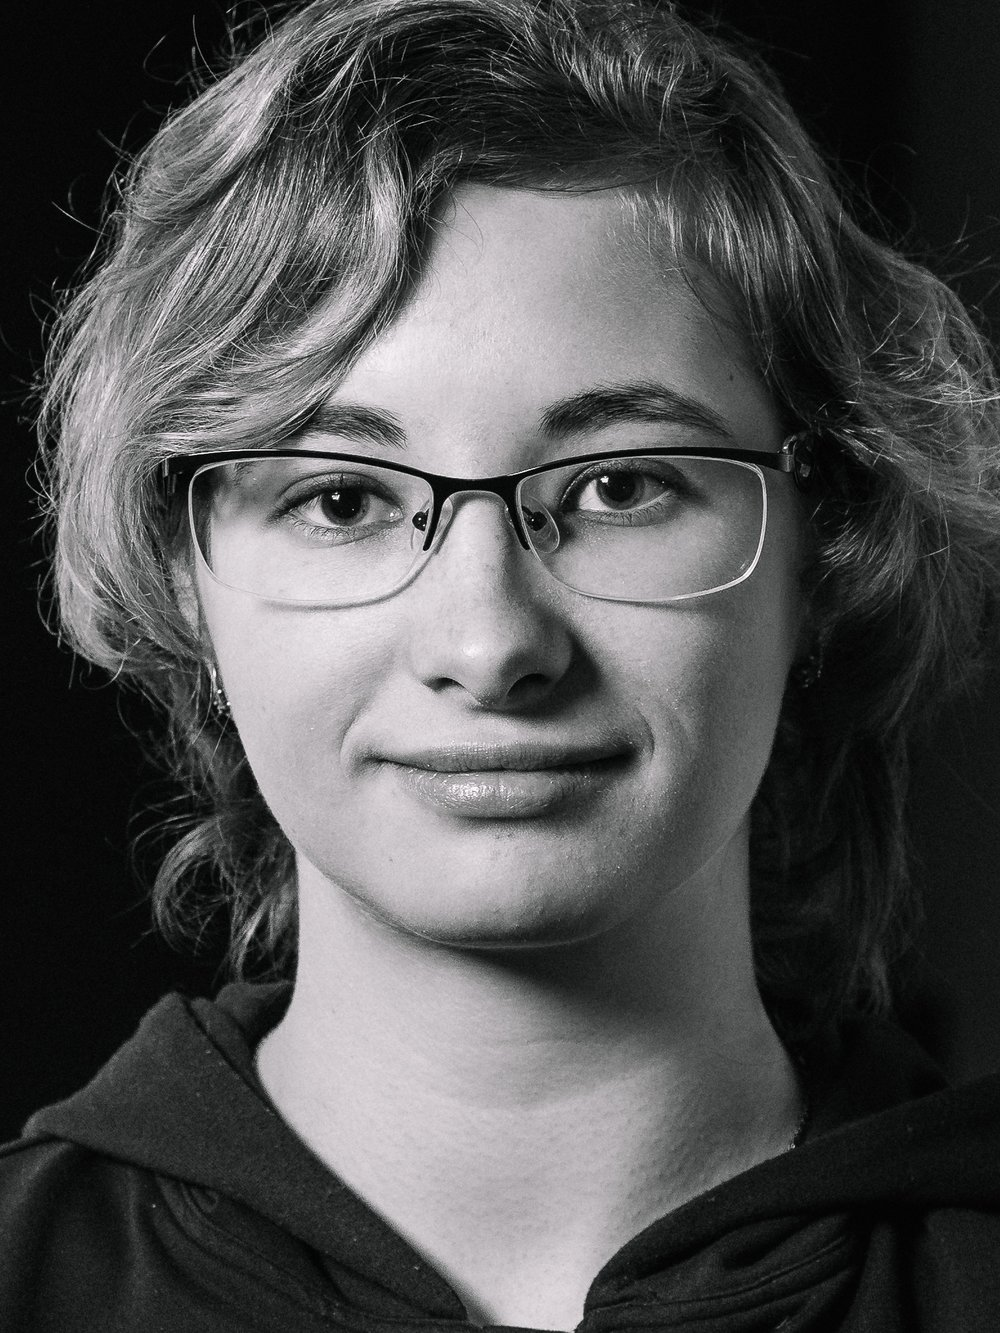 Kseniia Duginova Optical engineer. St. Petersburg National Research University of Information Technologies, Mechanics and Optics - Department of laser and light engineering.